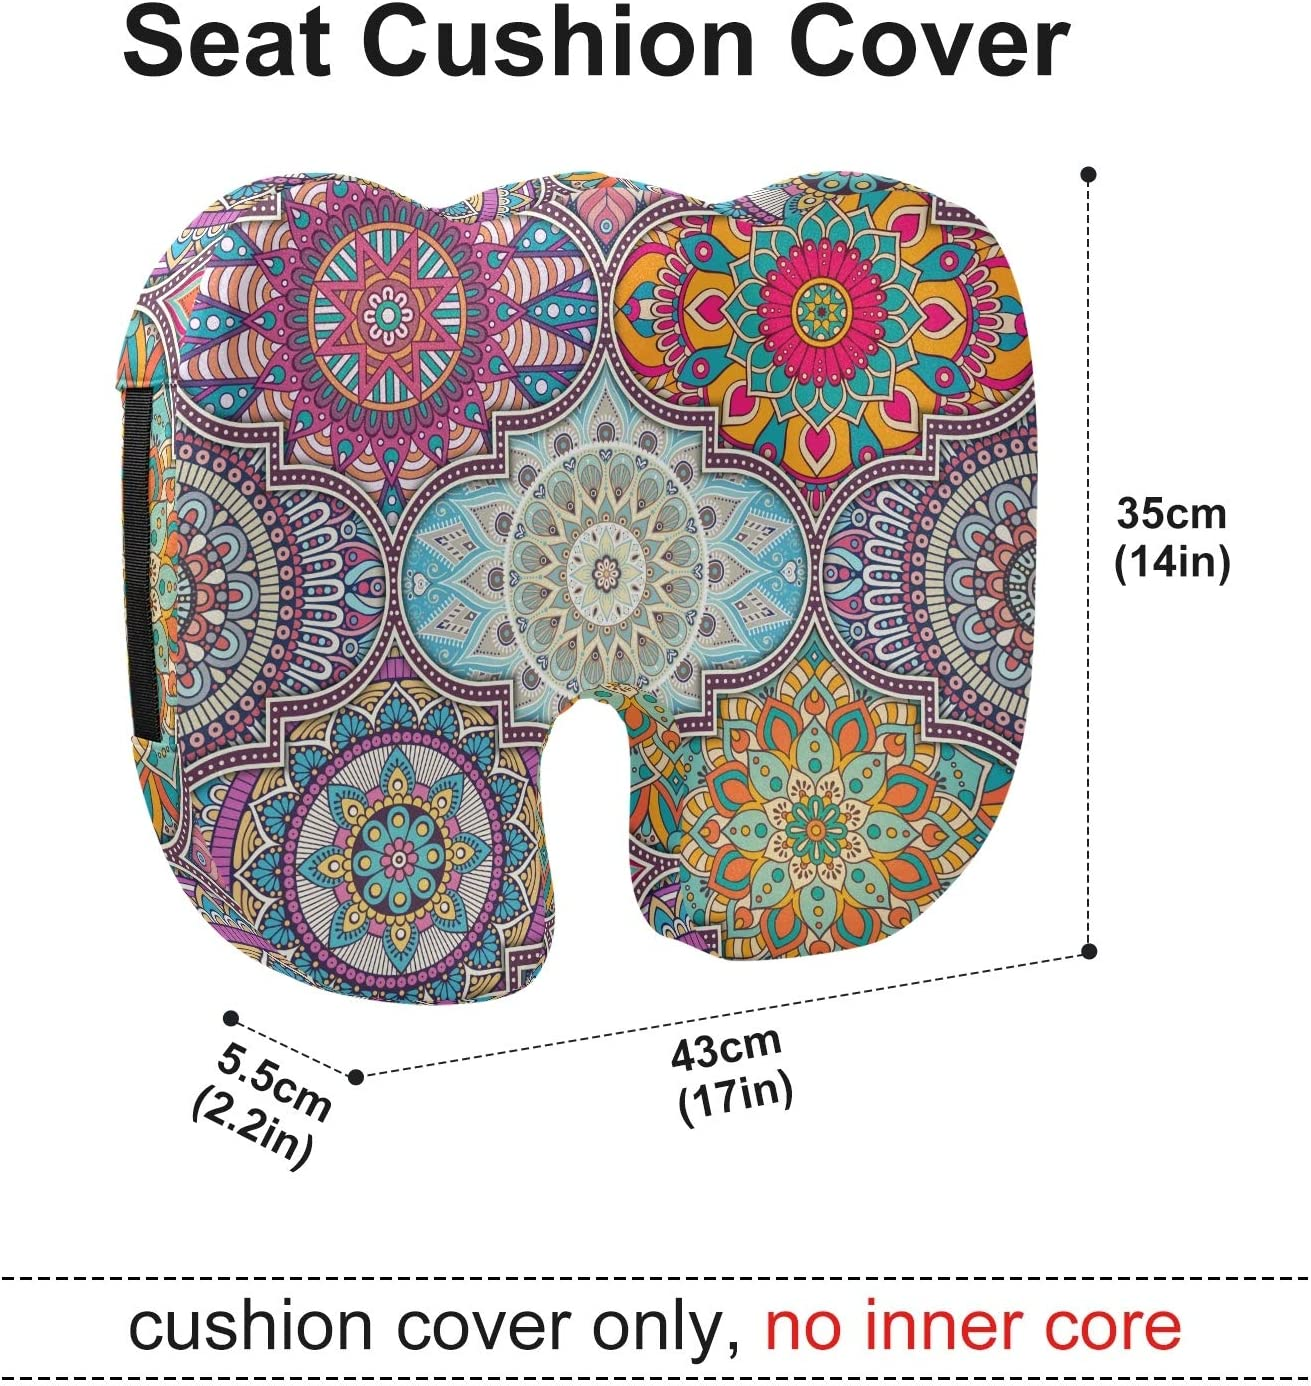 xigua Mandala Memory Foam Seat Cushion Cover Comfort Breathable Seat Cushion Protector for Car Seat Office Chair